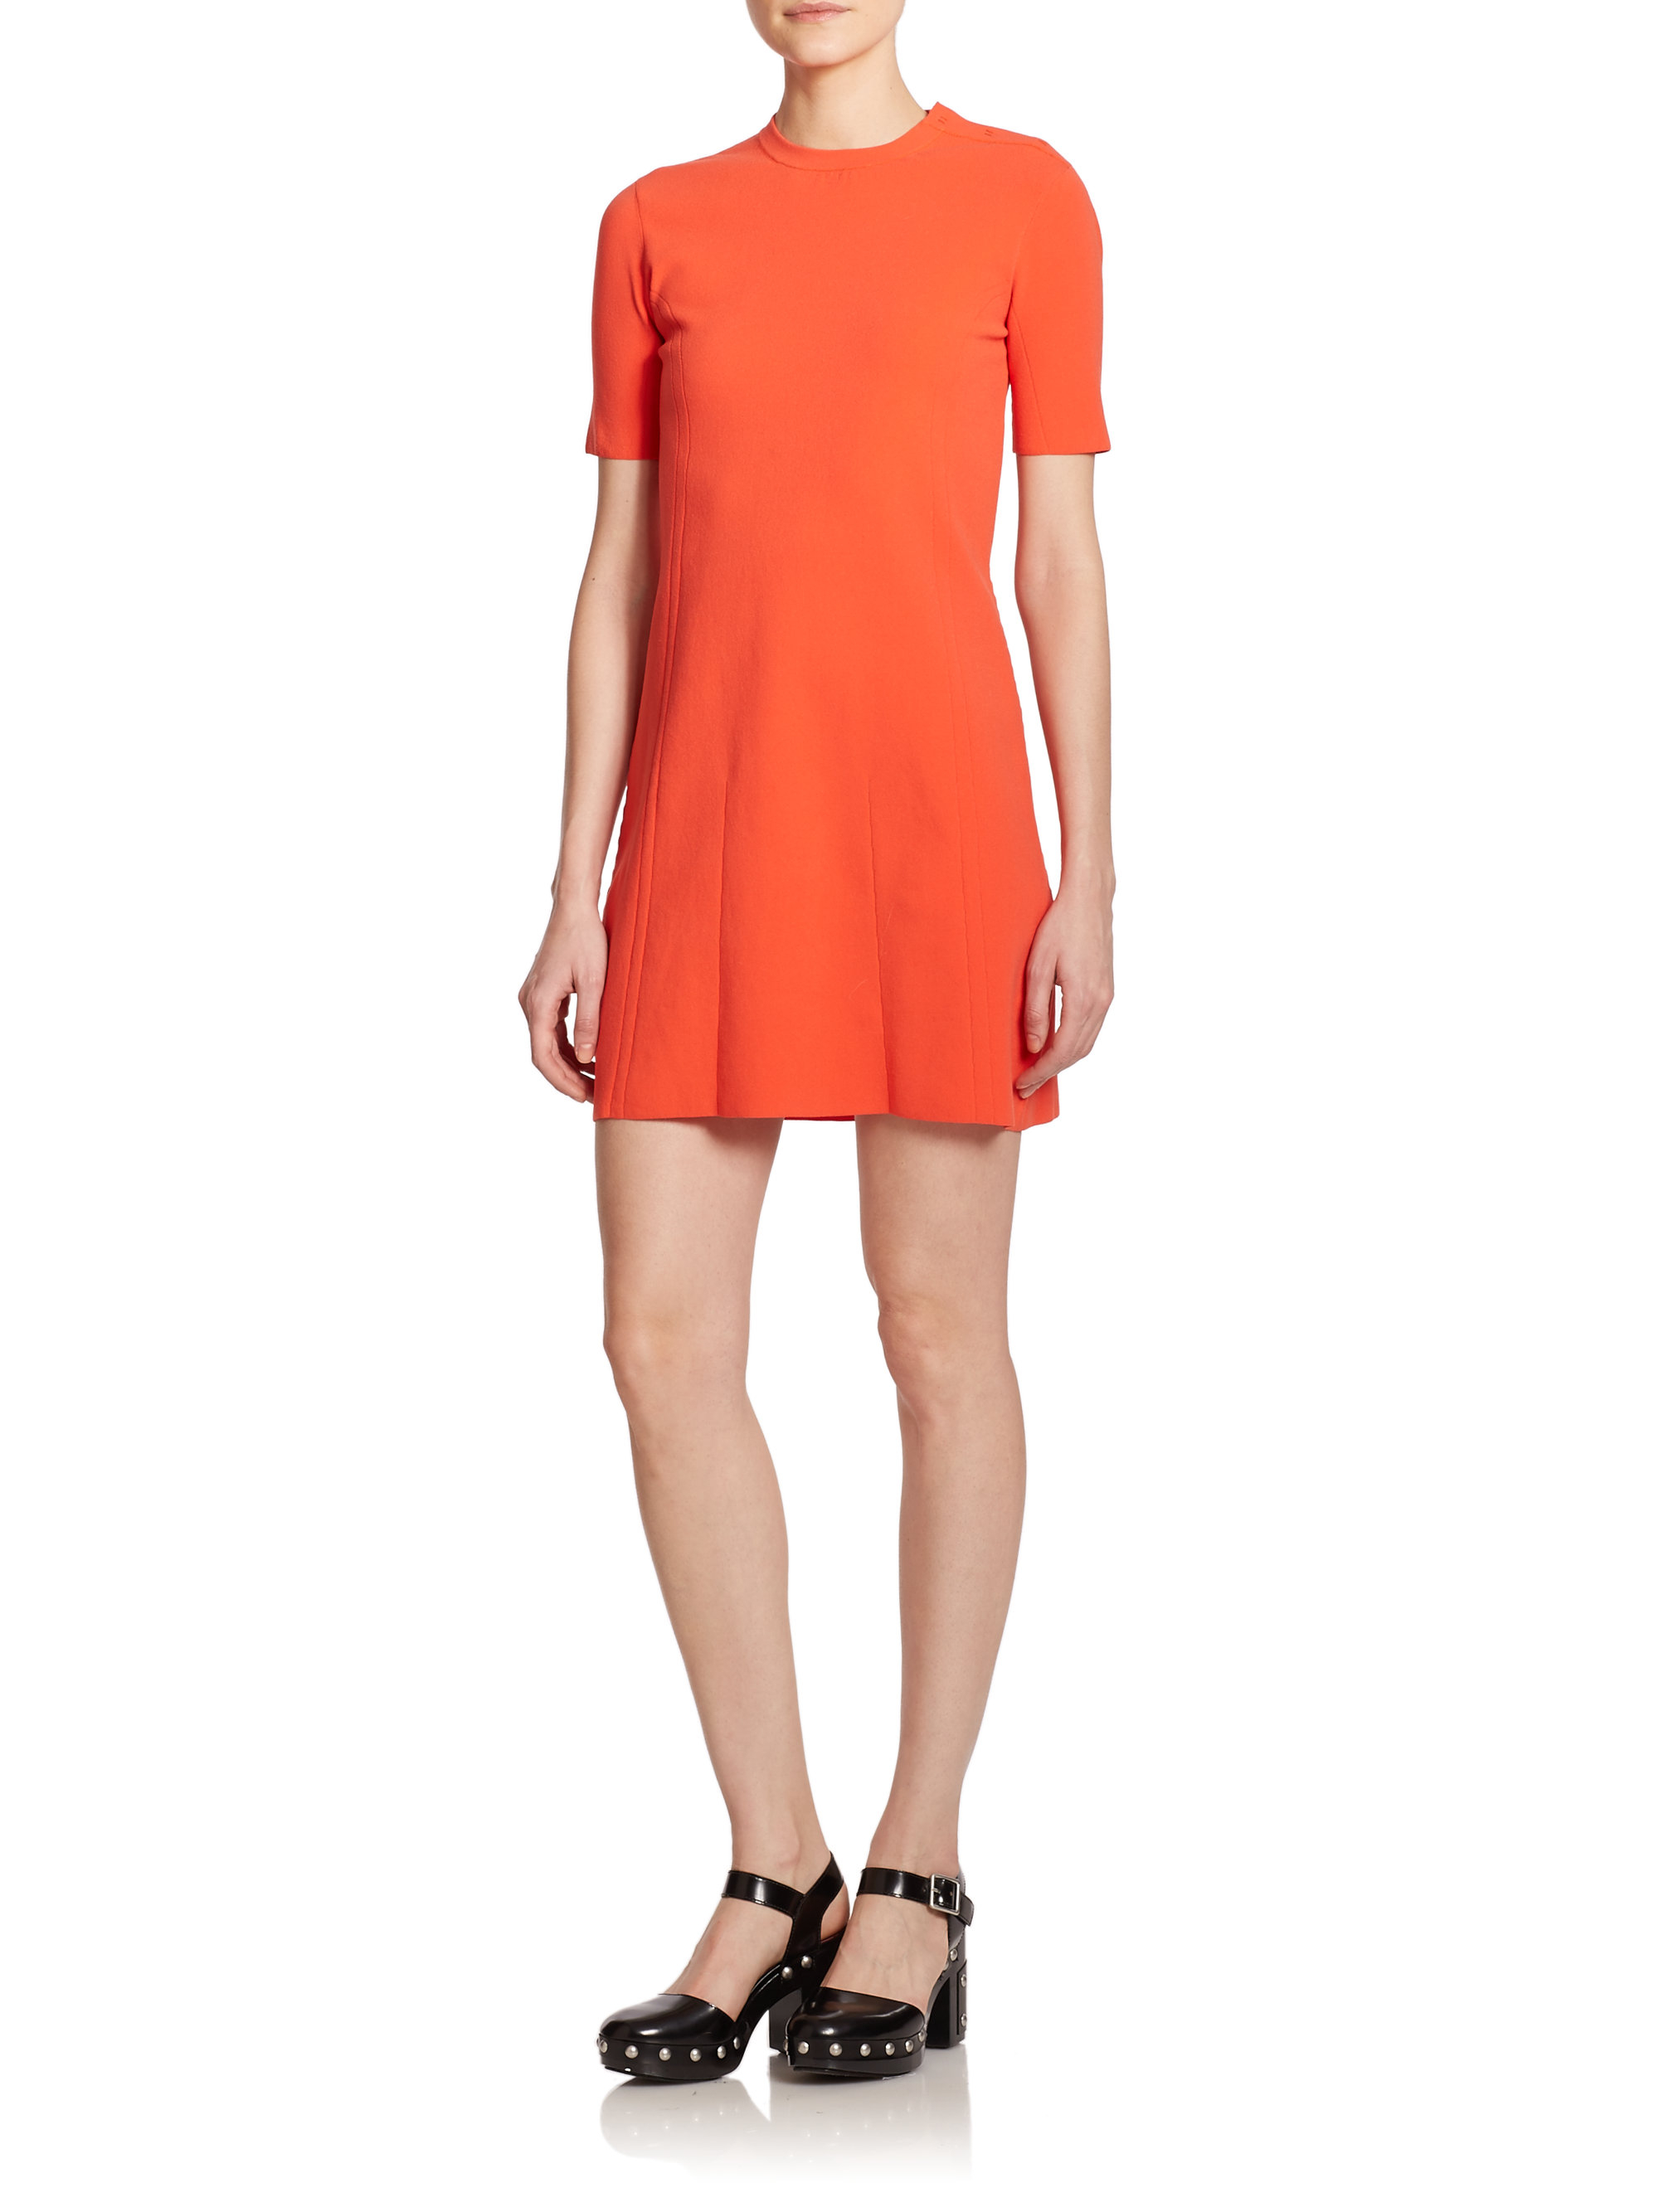 Outlet How Much Marc by Marc Jacobs Scoop Neck Mini Dress Outlet Supply Get To Buy Online ULacbvx3j